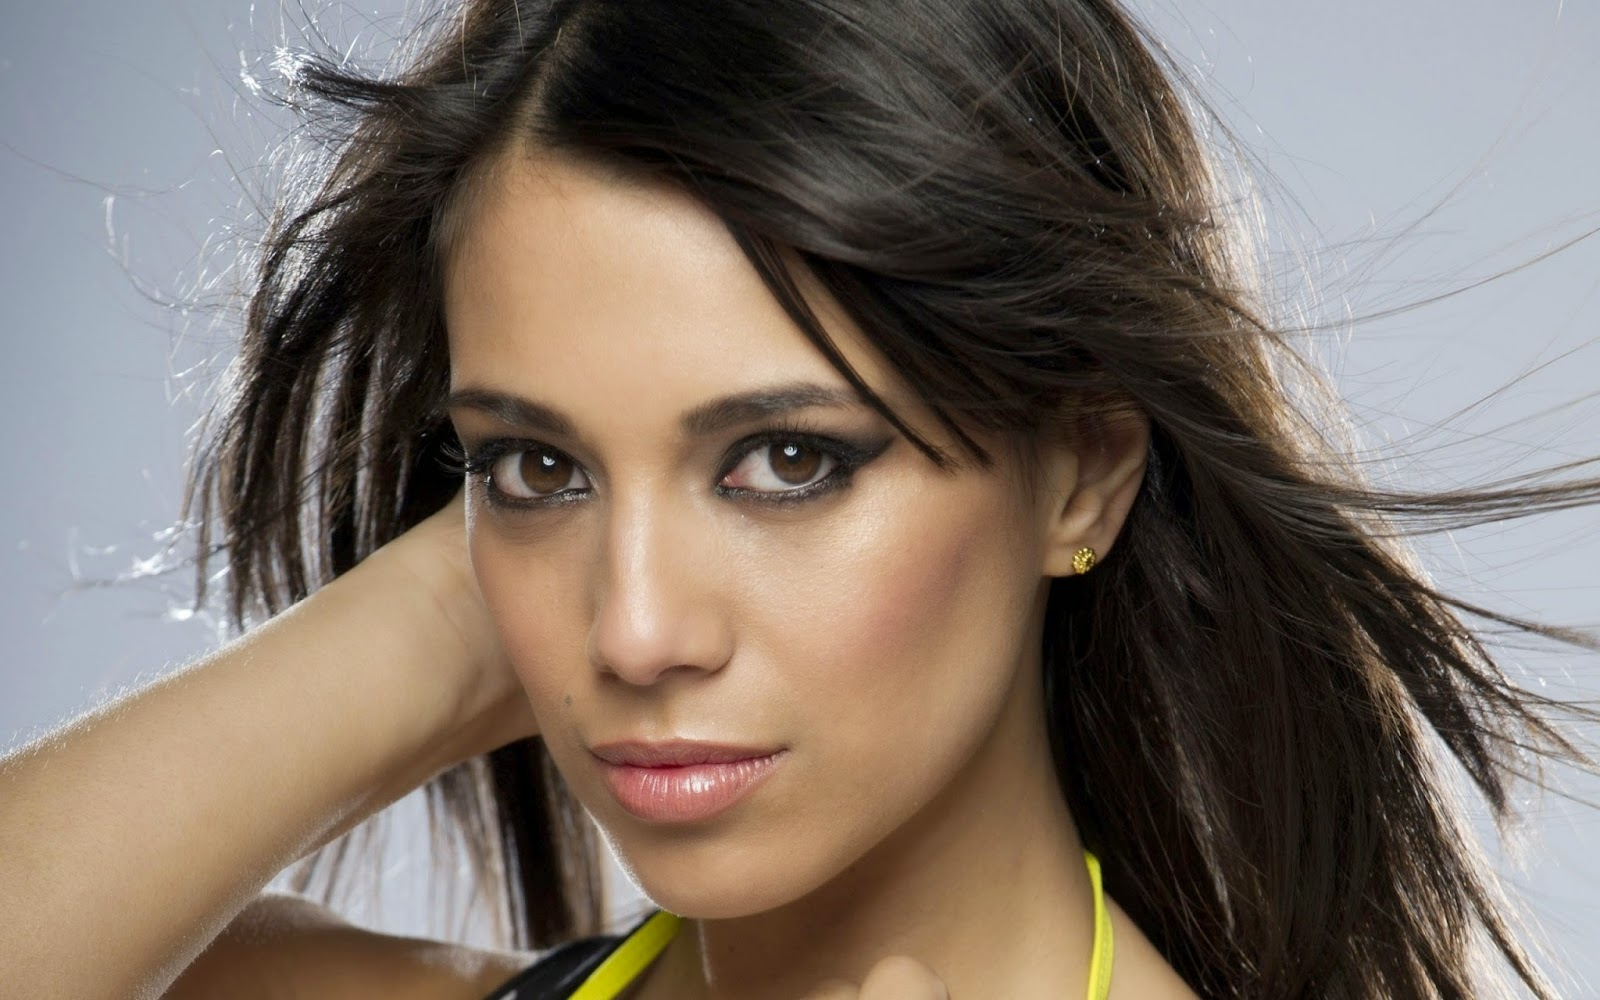 Hot Fiona Wade nudes (51 foto and video), Tits, Sideboobs, Twitter, braless 2006